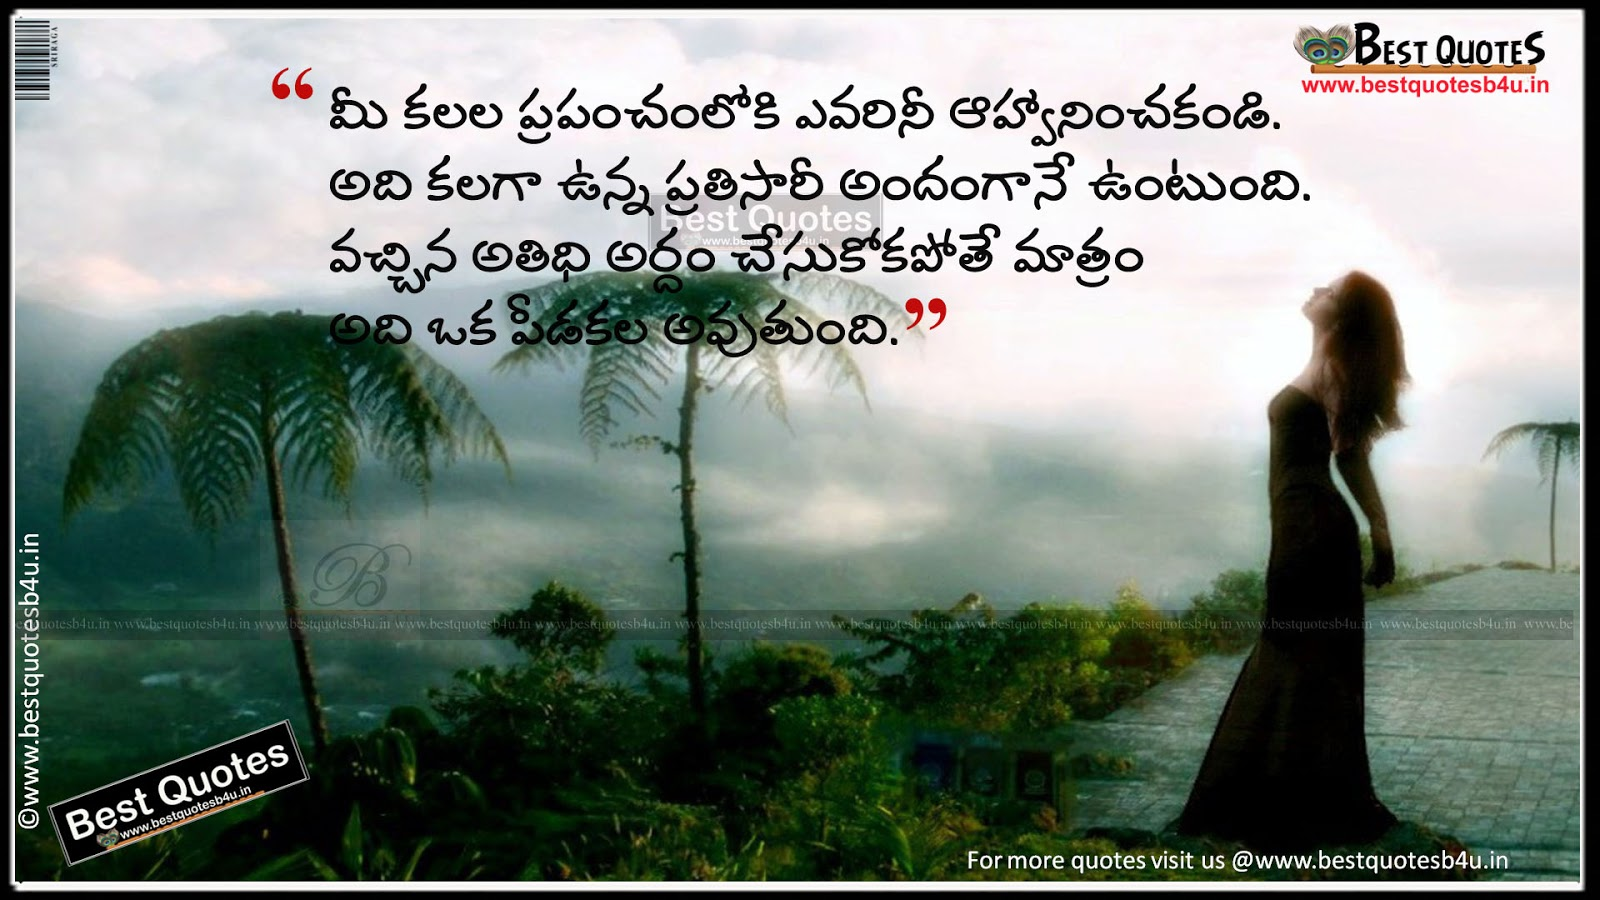 Best Love Quotes For Girlfriend In Telugu : ... prema kavithalu telugu love quotes heart touching telugu love quotes